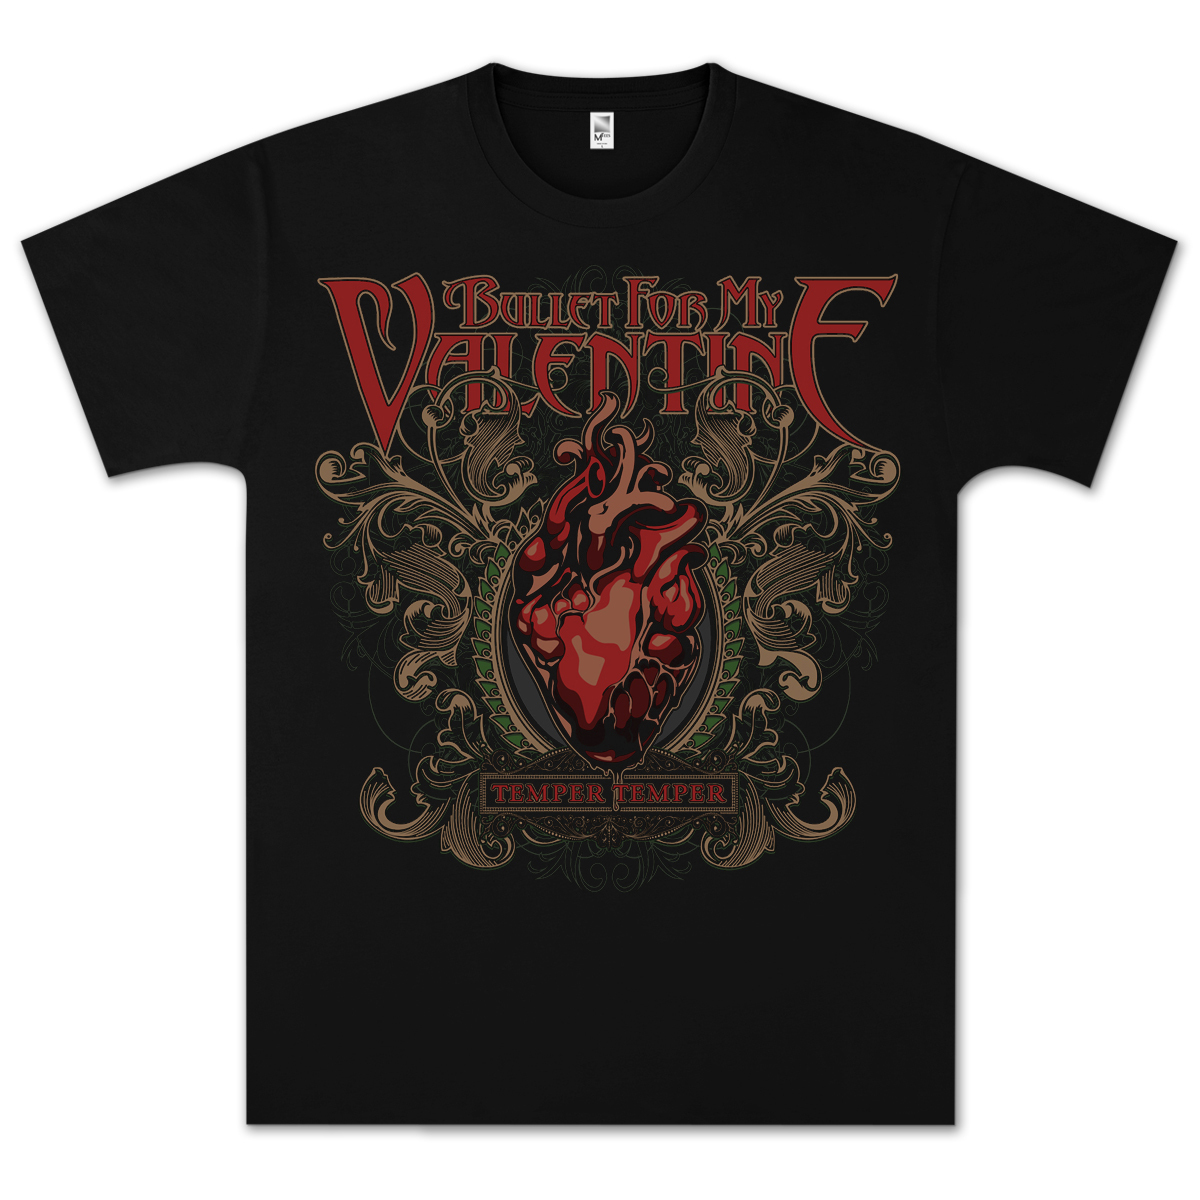 Bullet For My Valentine Temper Temper T-Shirt